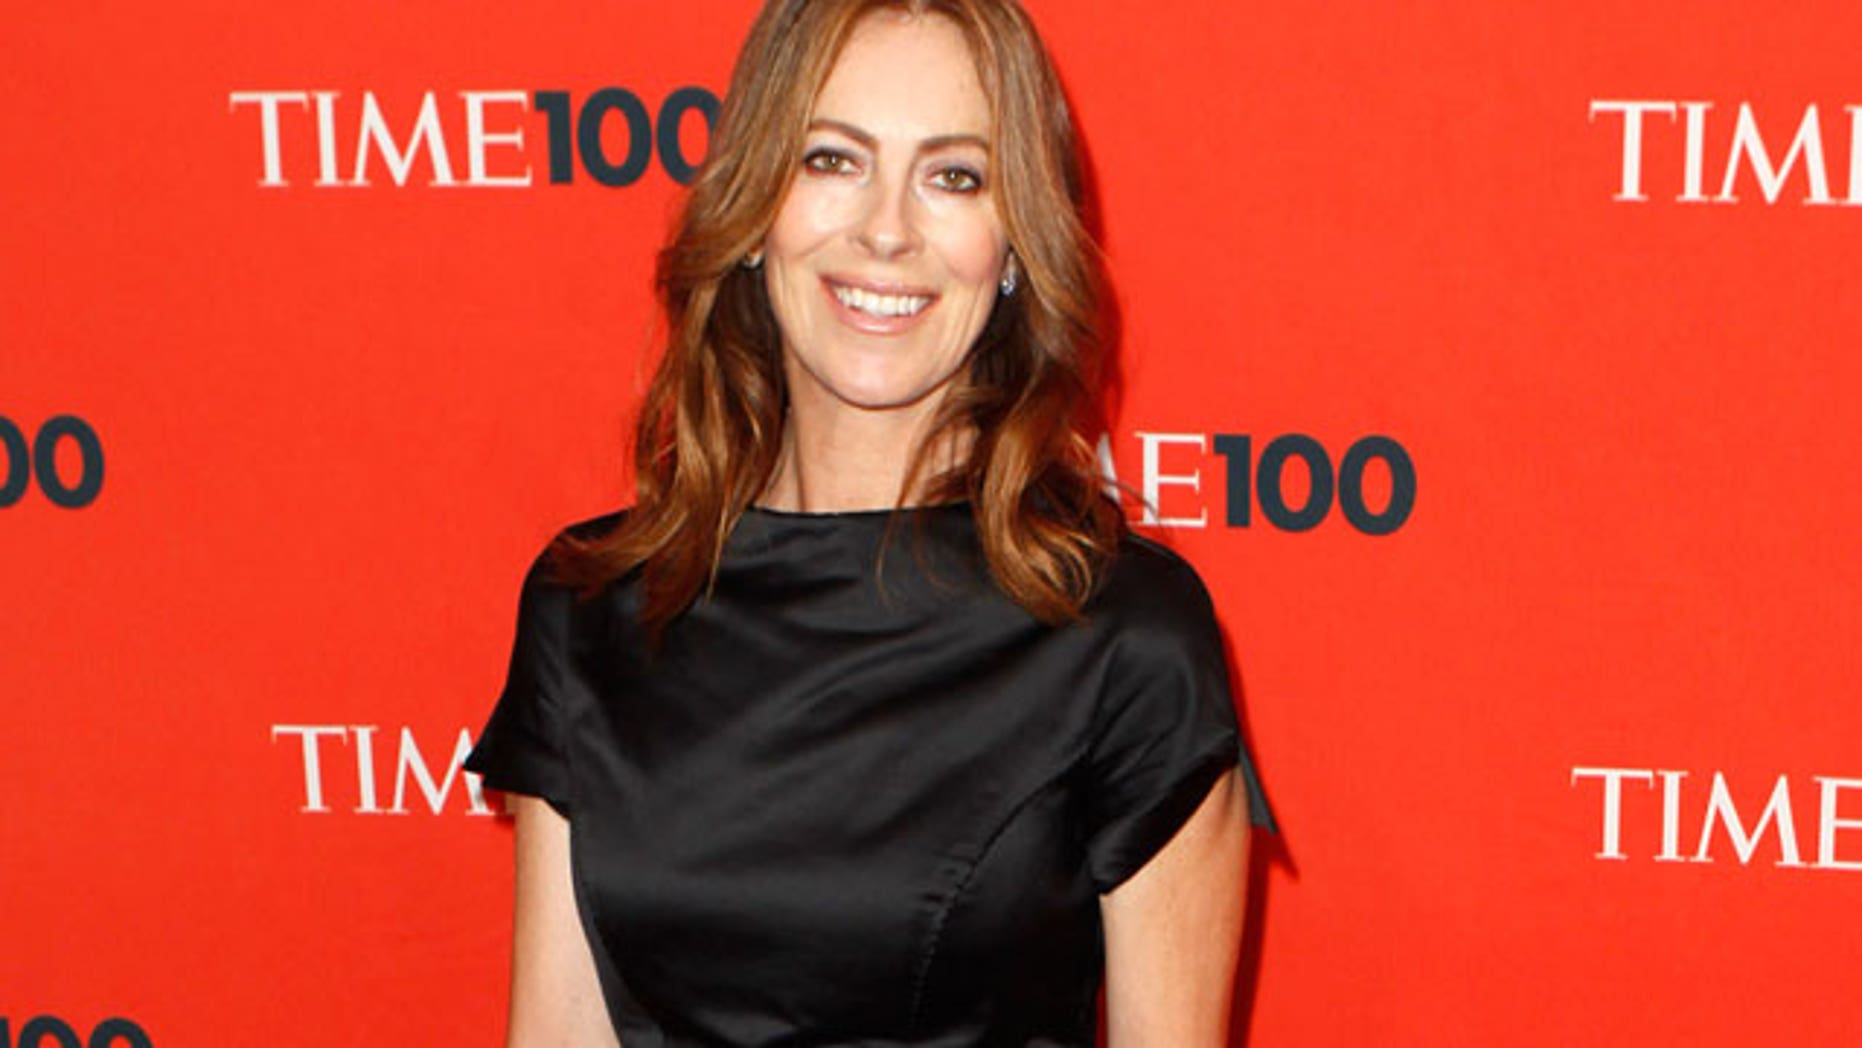 Kathryn Bigelow is working on a film about a mission to kill bin Laden. (Reuters)